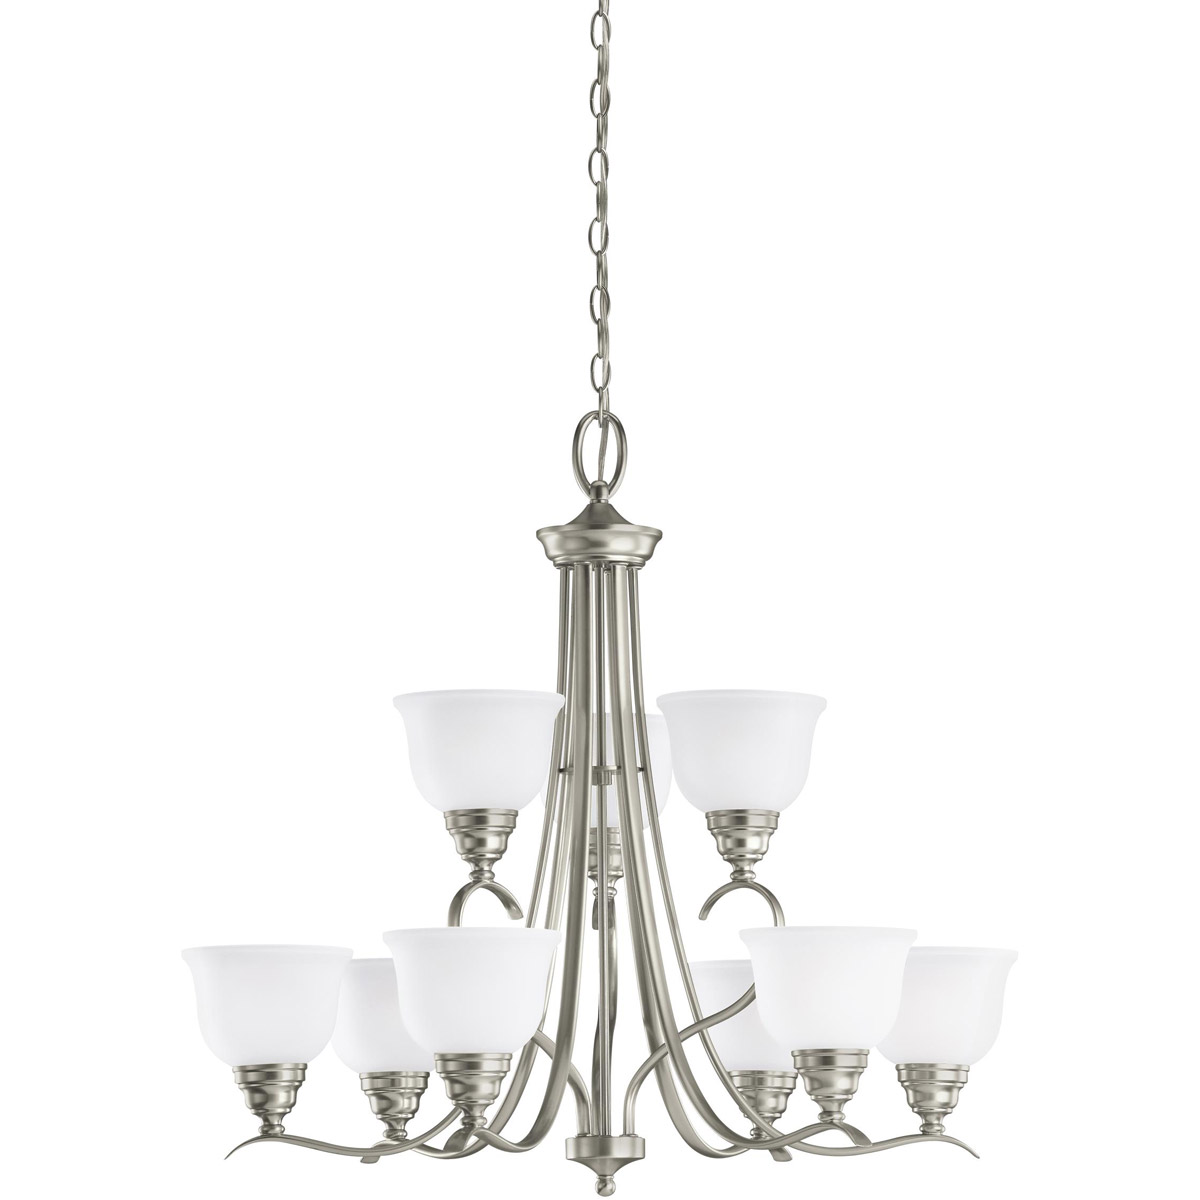 Sea Gull 31627-962 Wheaton 9 Light 31 inch Brushed Nickel Chandelier Ceiling Light in Standard photo